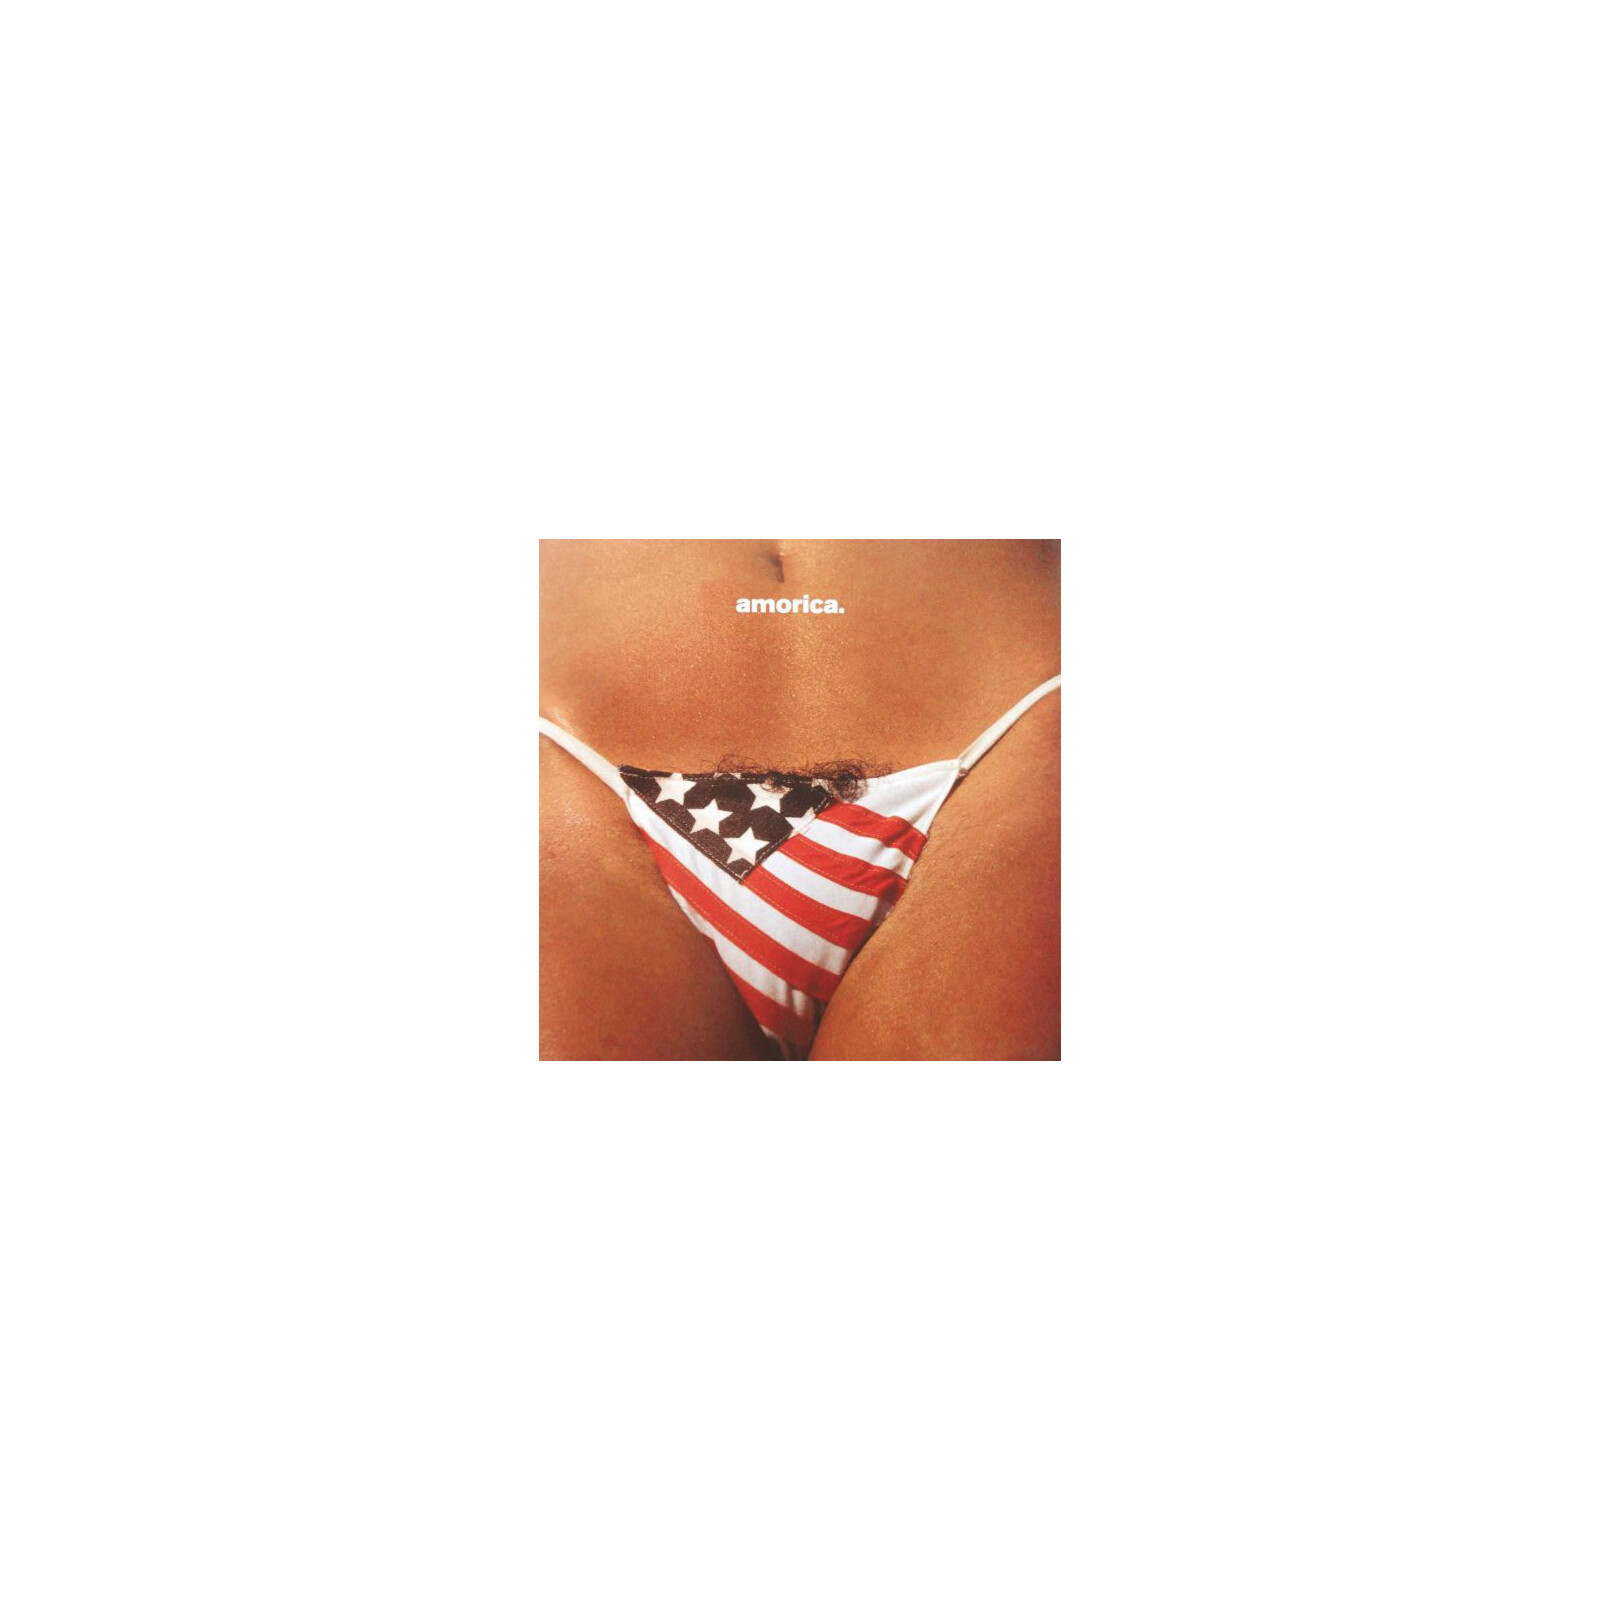 THE BLACK CROWES - AMORICA 180GM VINYL INC MP3 DOWNLOAD